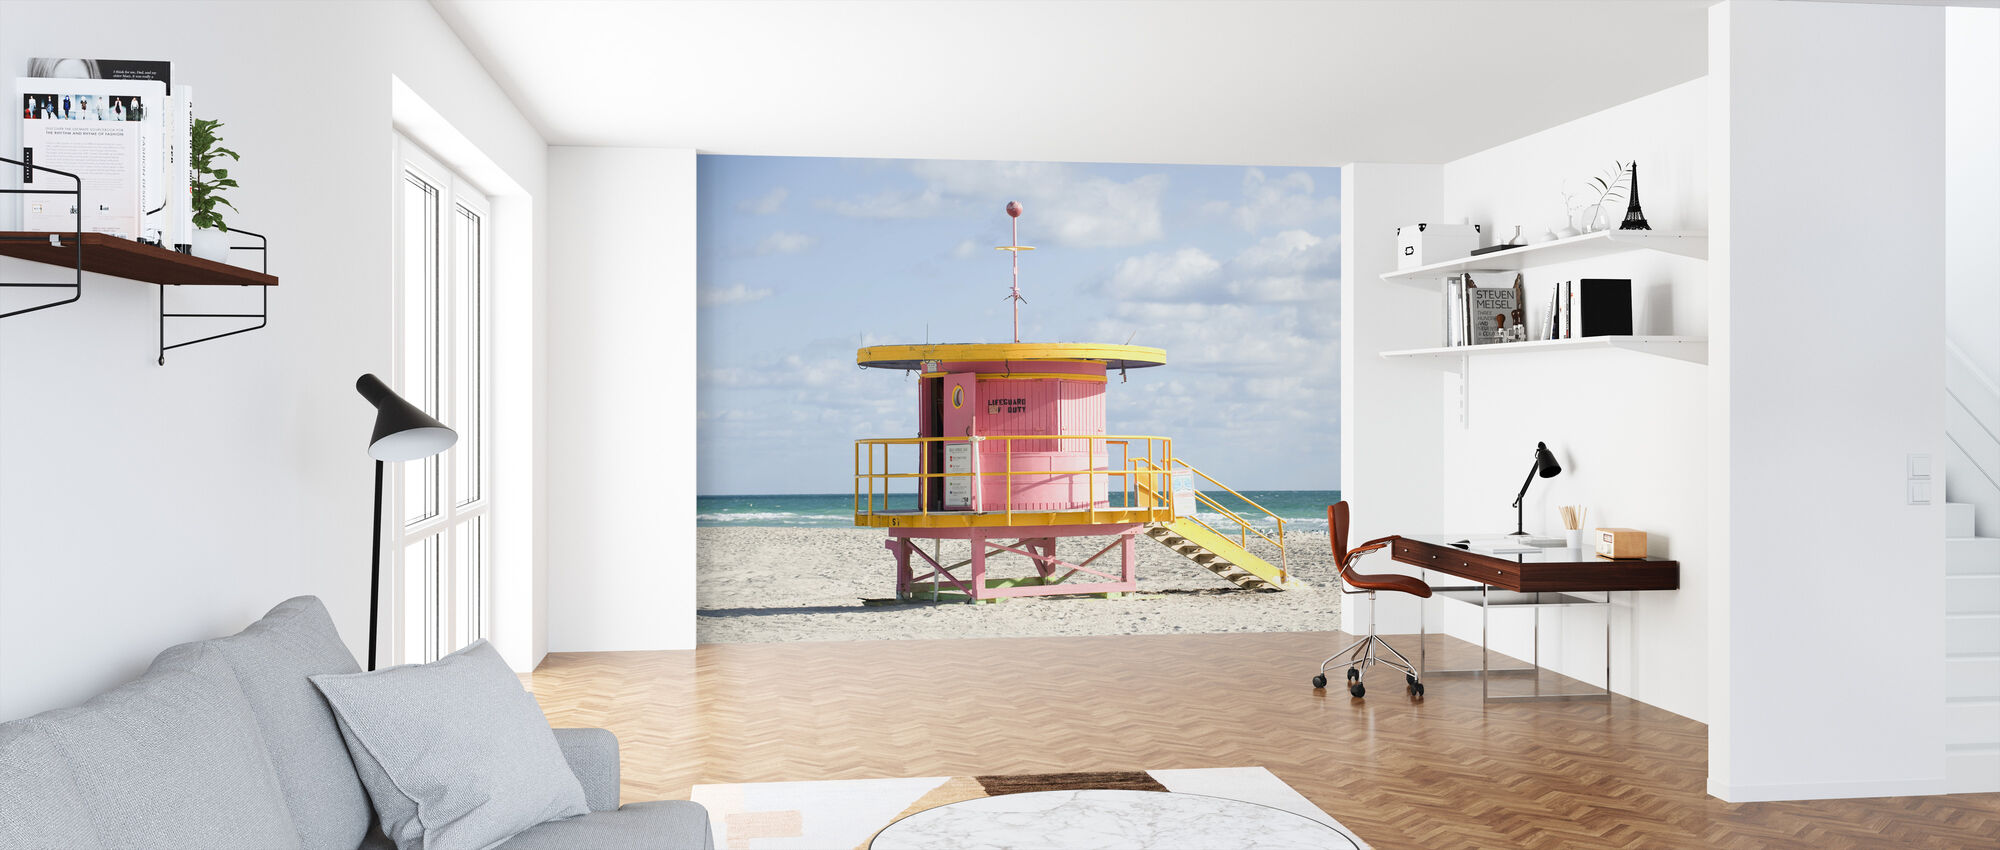 Lifeguard Tower in Miami, USA - Wallpaper - Office